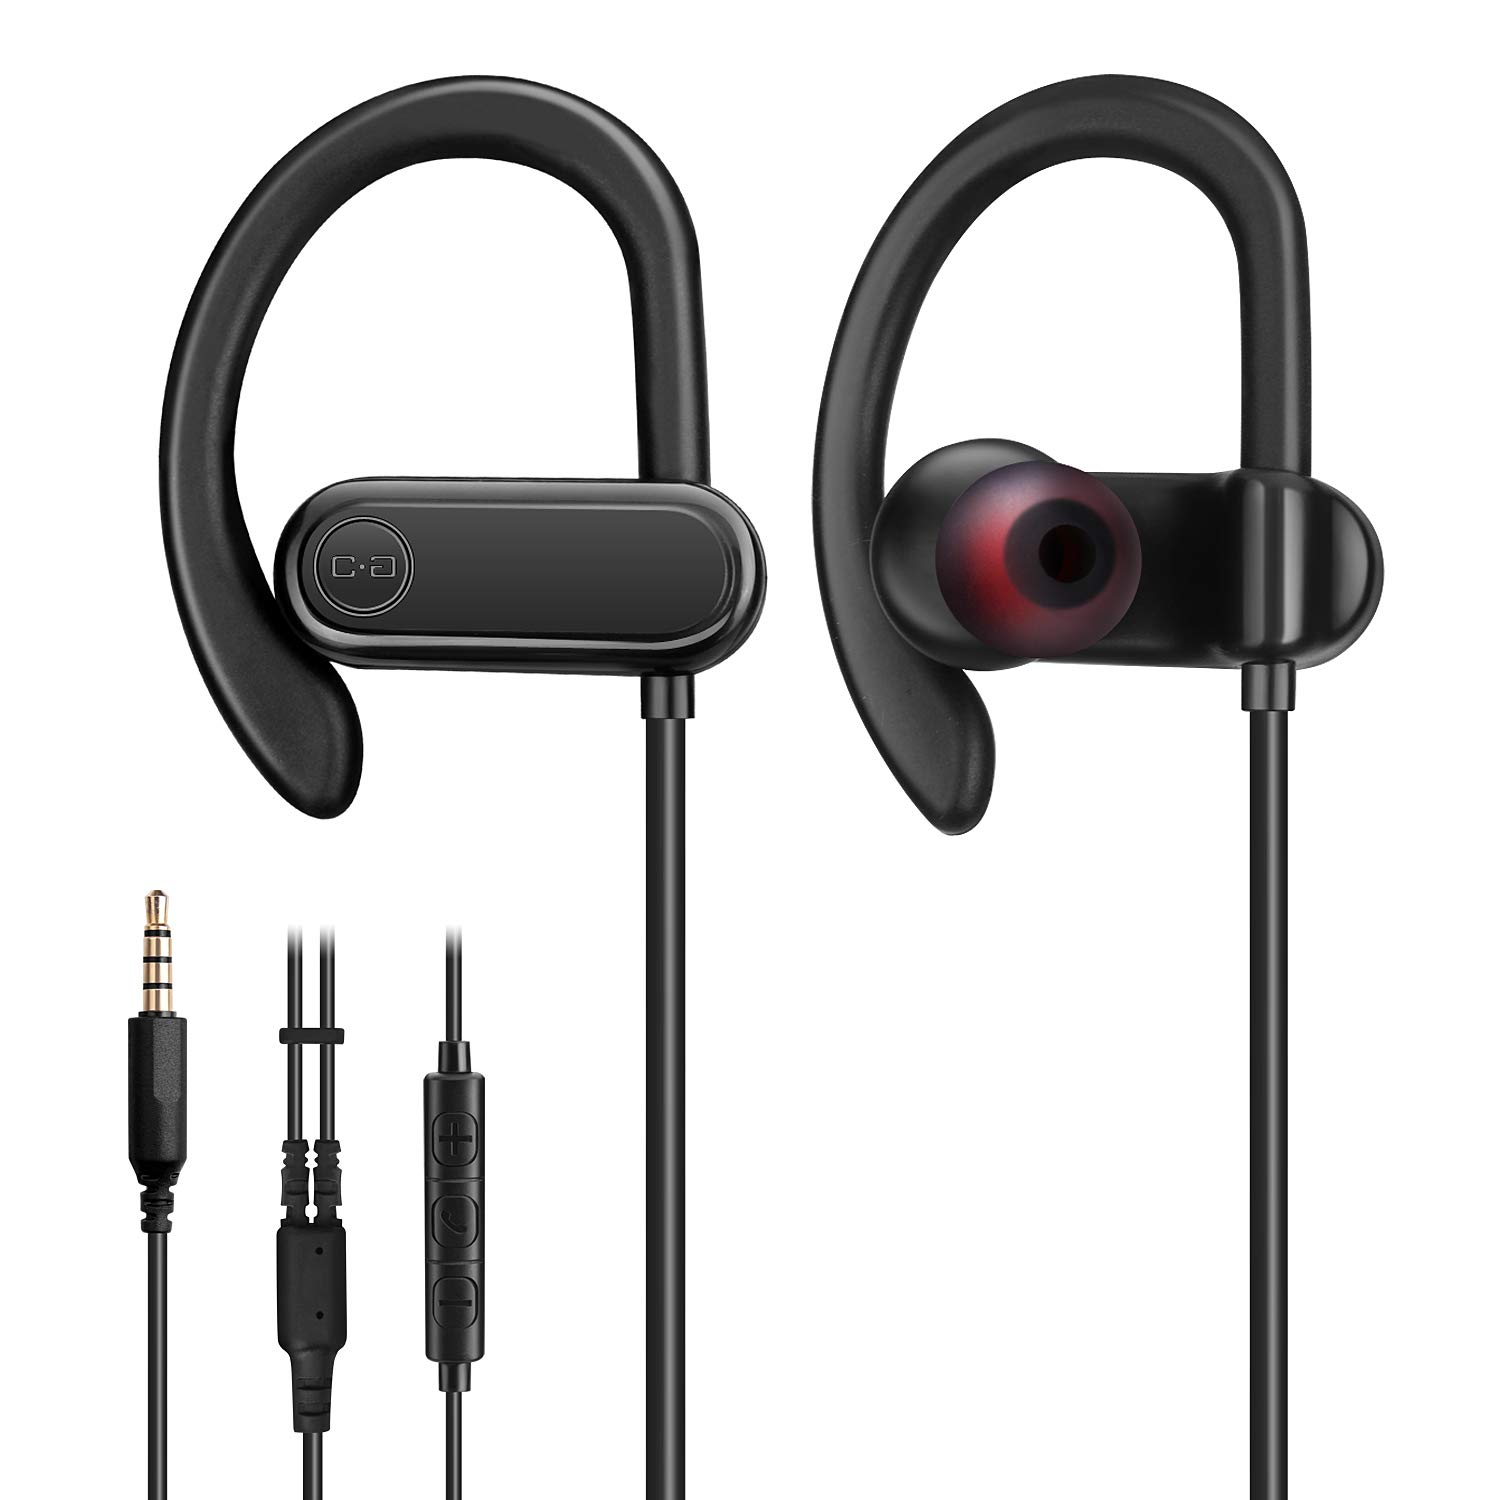 Wired Earbuds with Microphone, Sports Running Headphones NOT Bluetooth with Snug and Stable Ear Hooks, Gym Earphones for Heavy Workout Exercise with 3.5mm Audio Plug for Smartphones